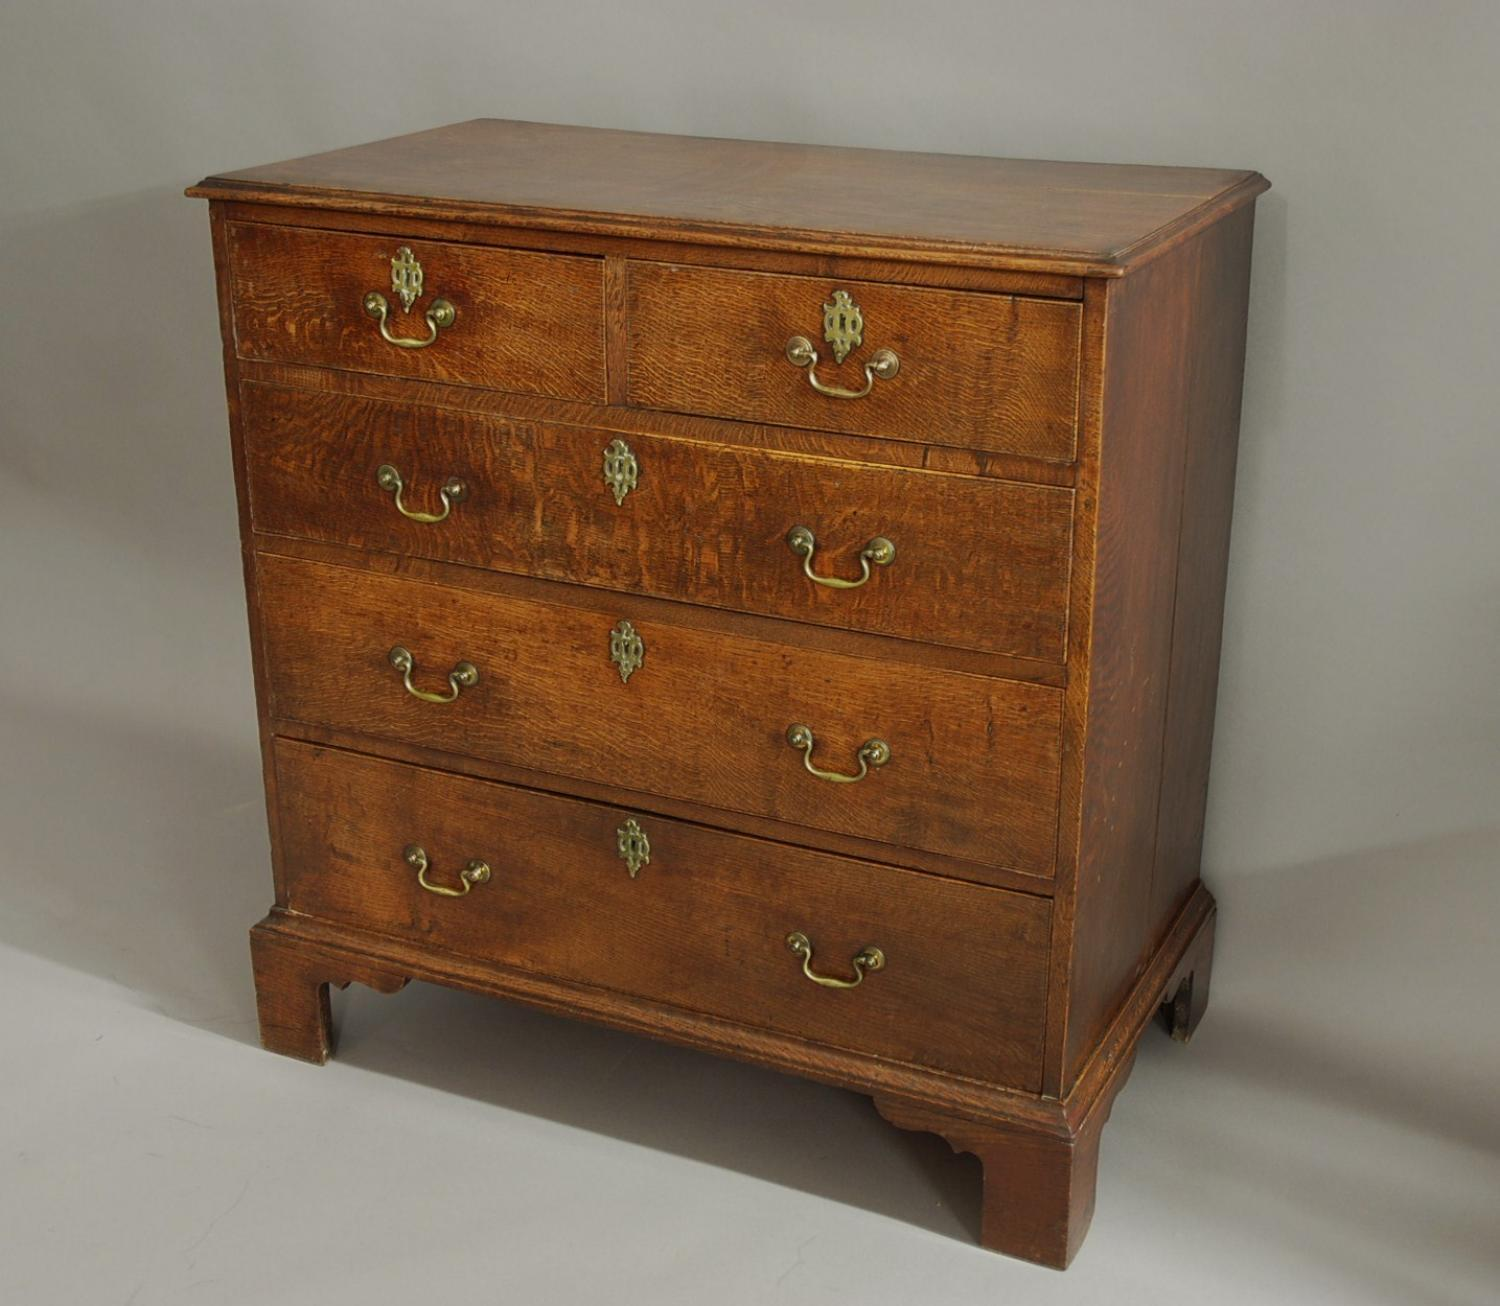 18thc oak chest of drawers of fine patina